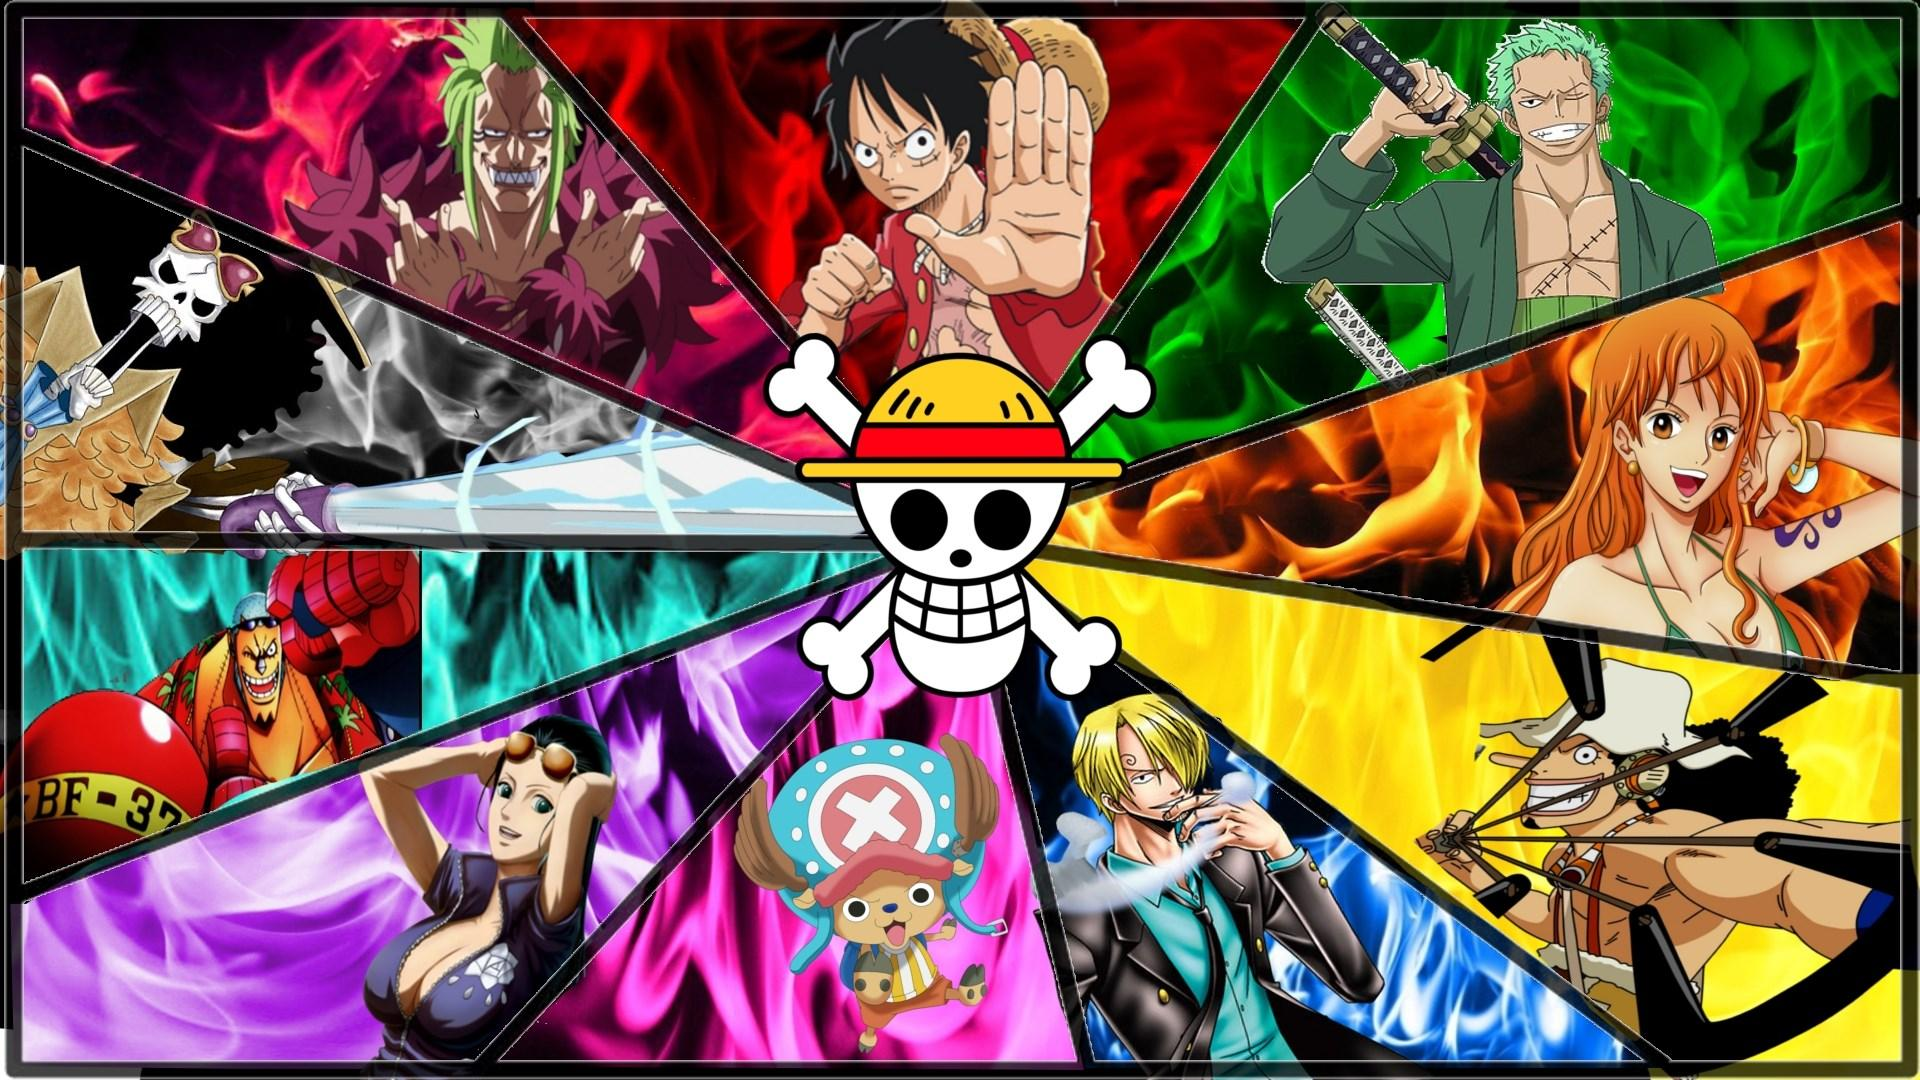 One Piece Wallpaper Hd 1920x1080 Posted By Samantha Walker